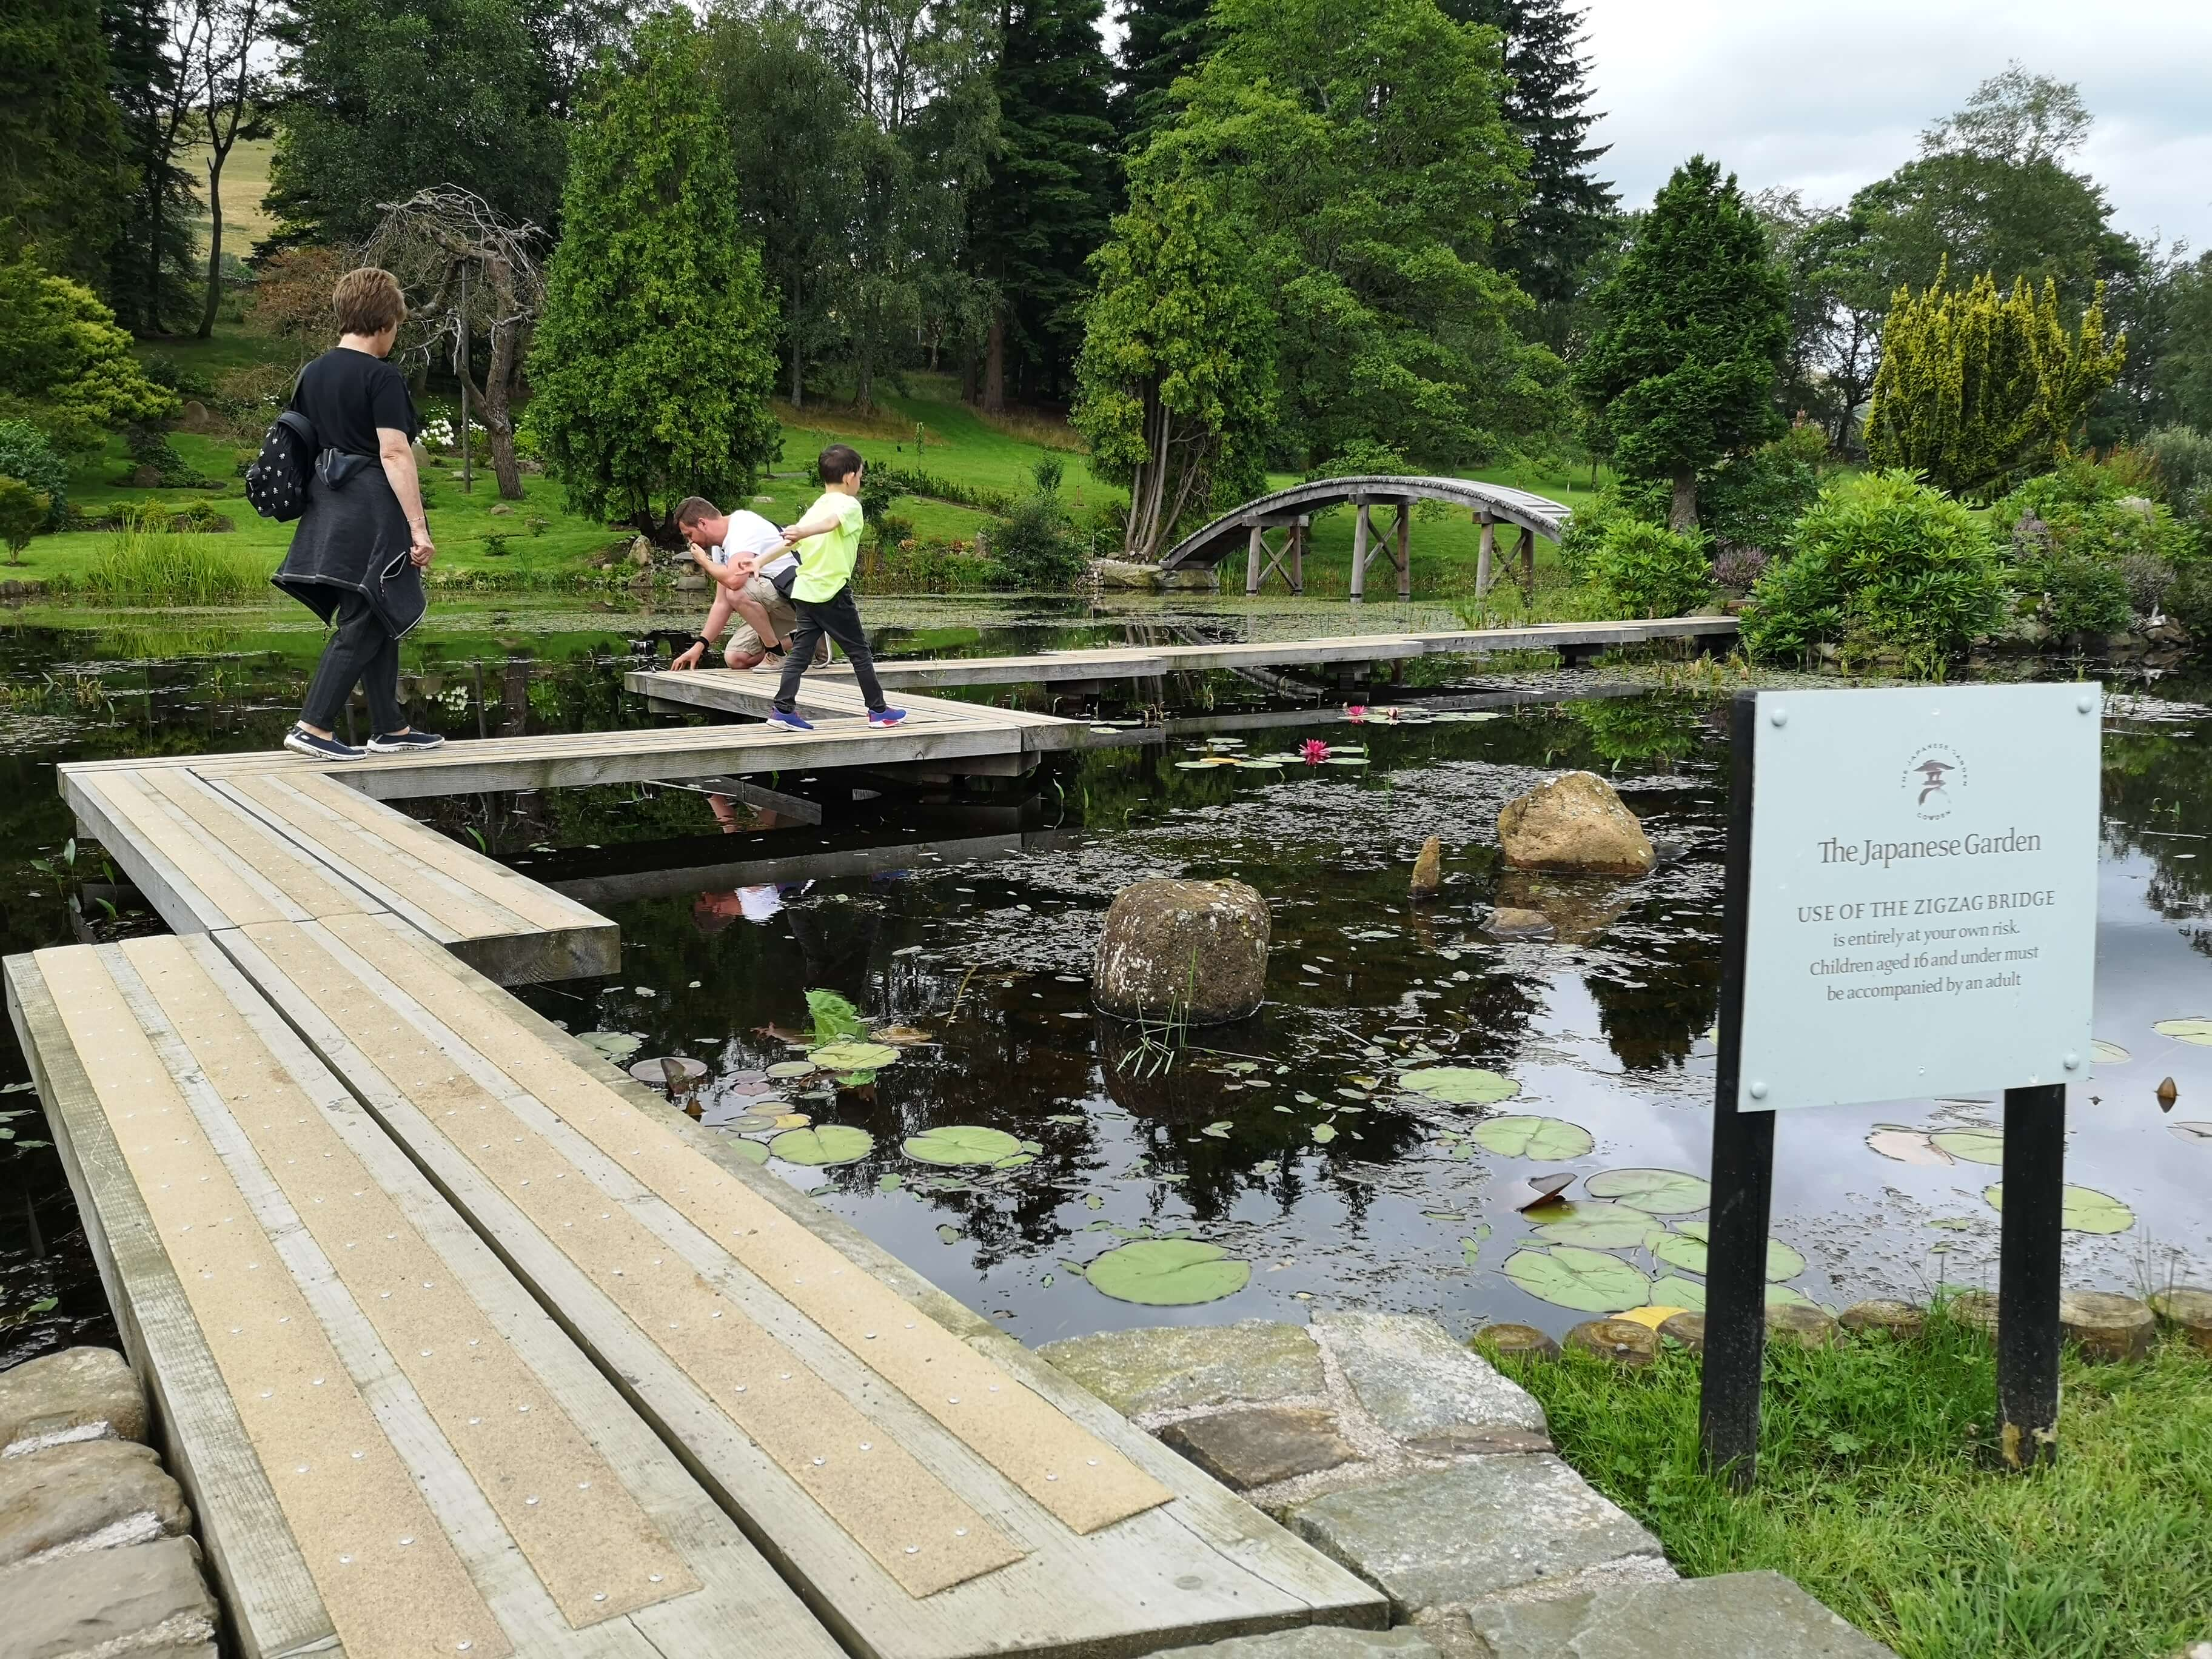 Emma's mum and nephew walking across a narrow path over the lily pad pond.